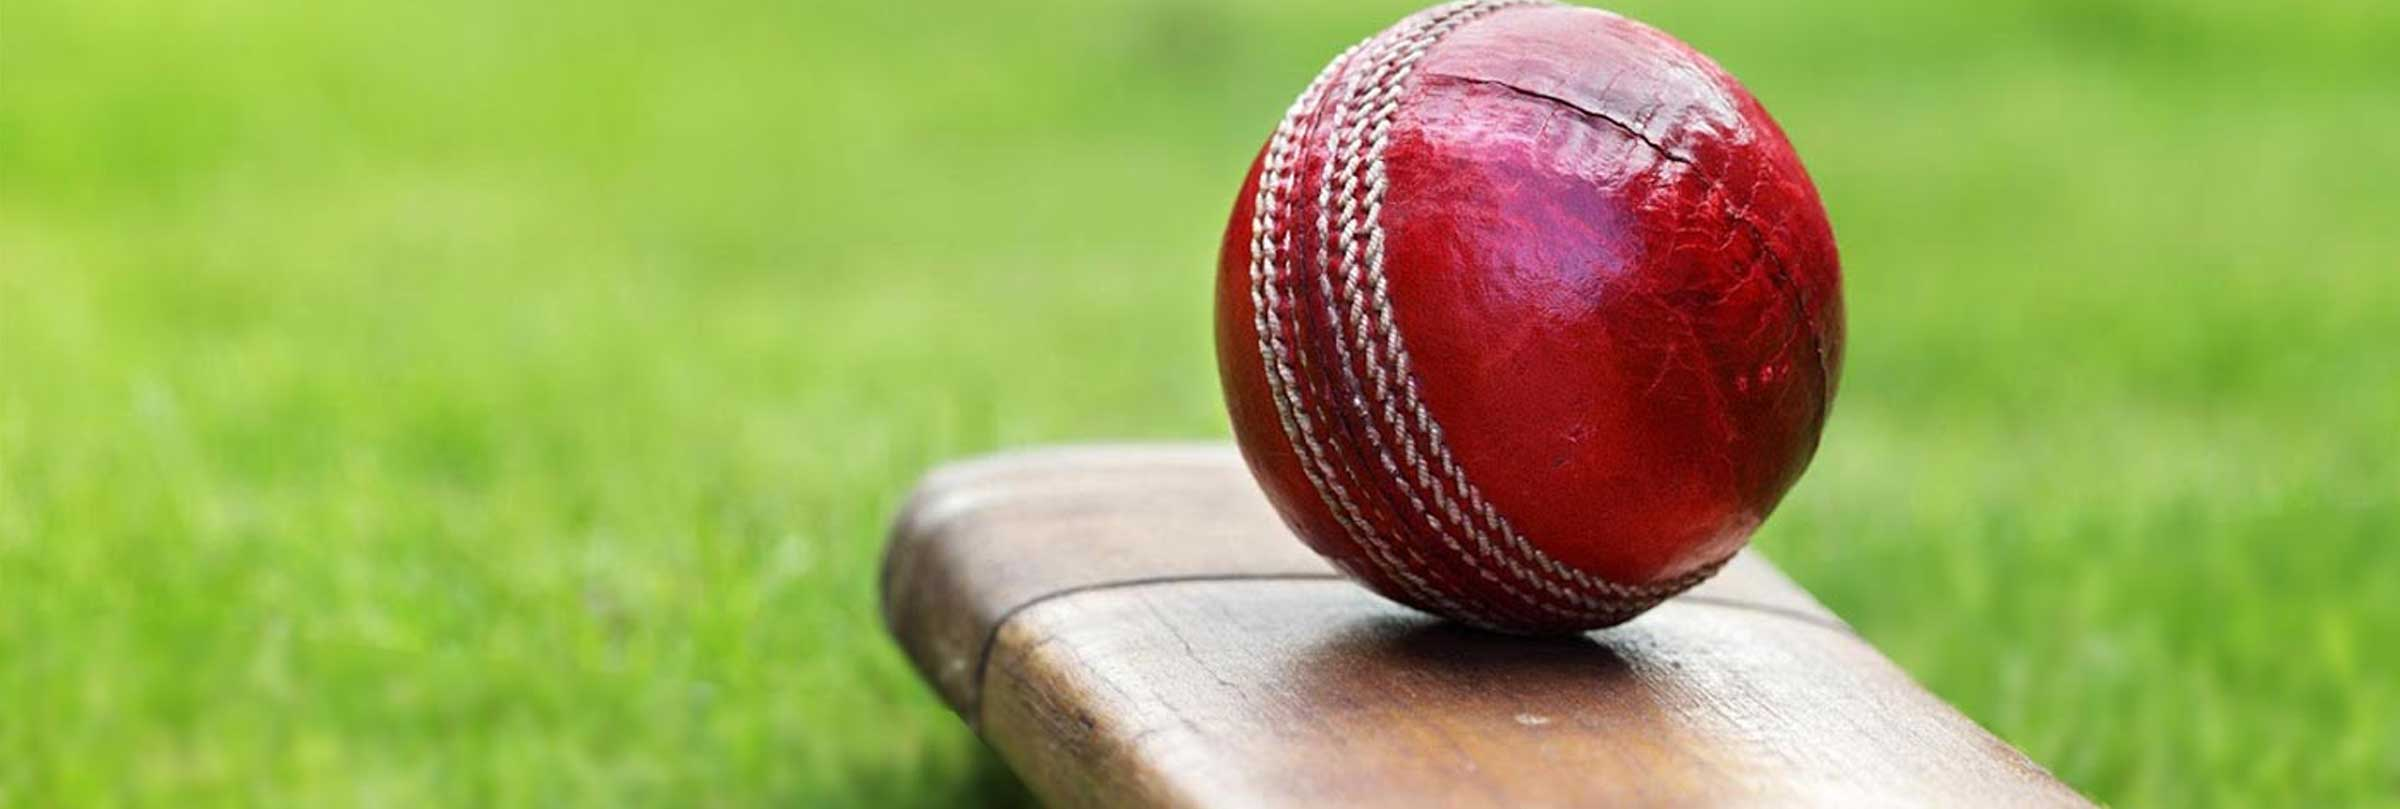 Cricket Ball and Bat on Synthetic Cricket Pitch